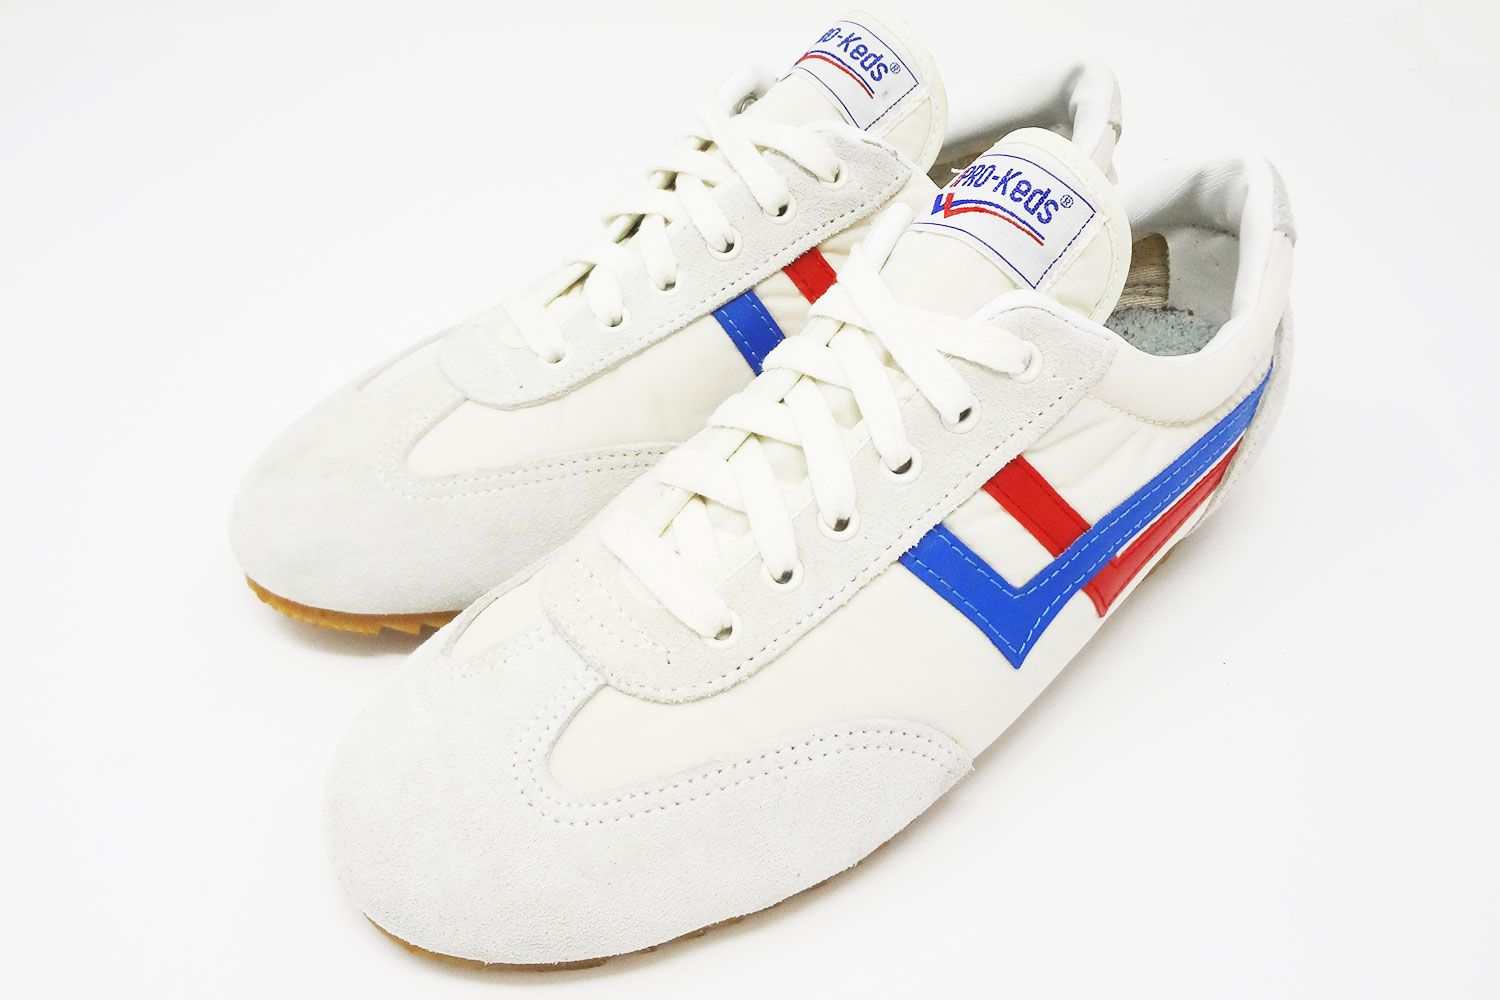 Pro Keds Late 70s Early 80s Vintage Running Shoes The Deffest Vintage Shoes Men Classic Sneakers Vintage Sneakers